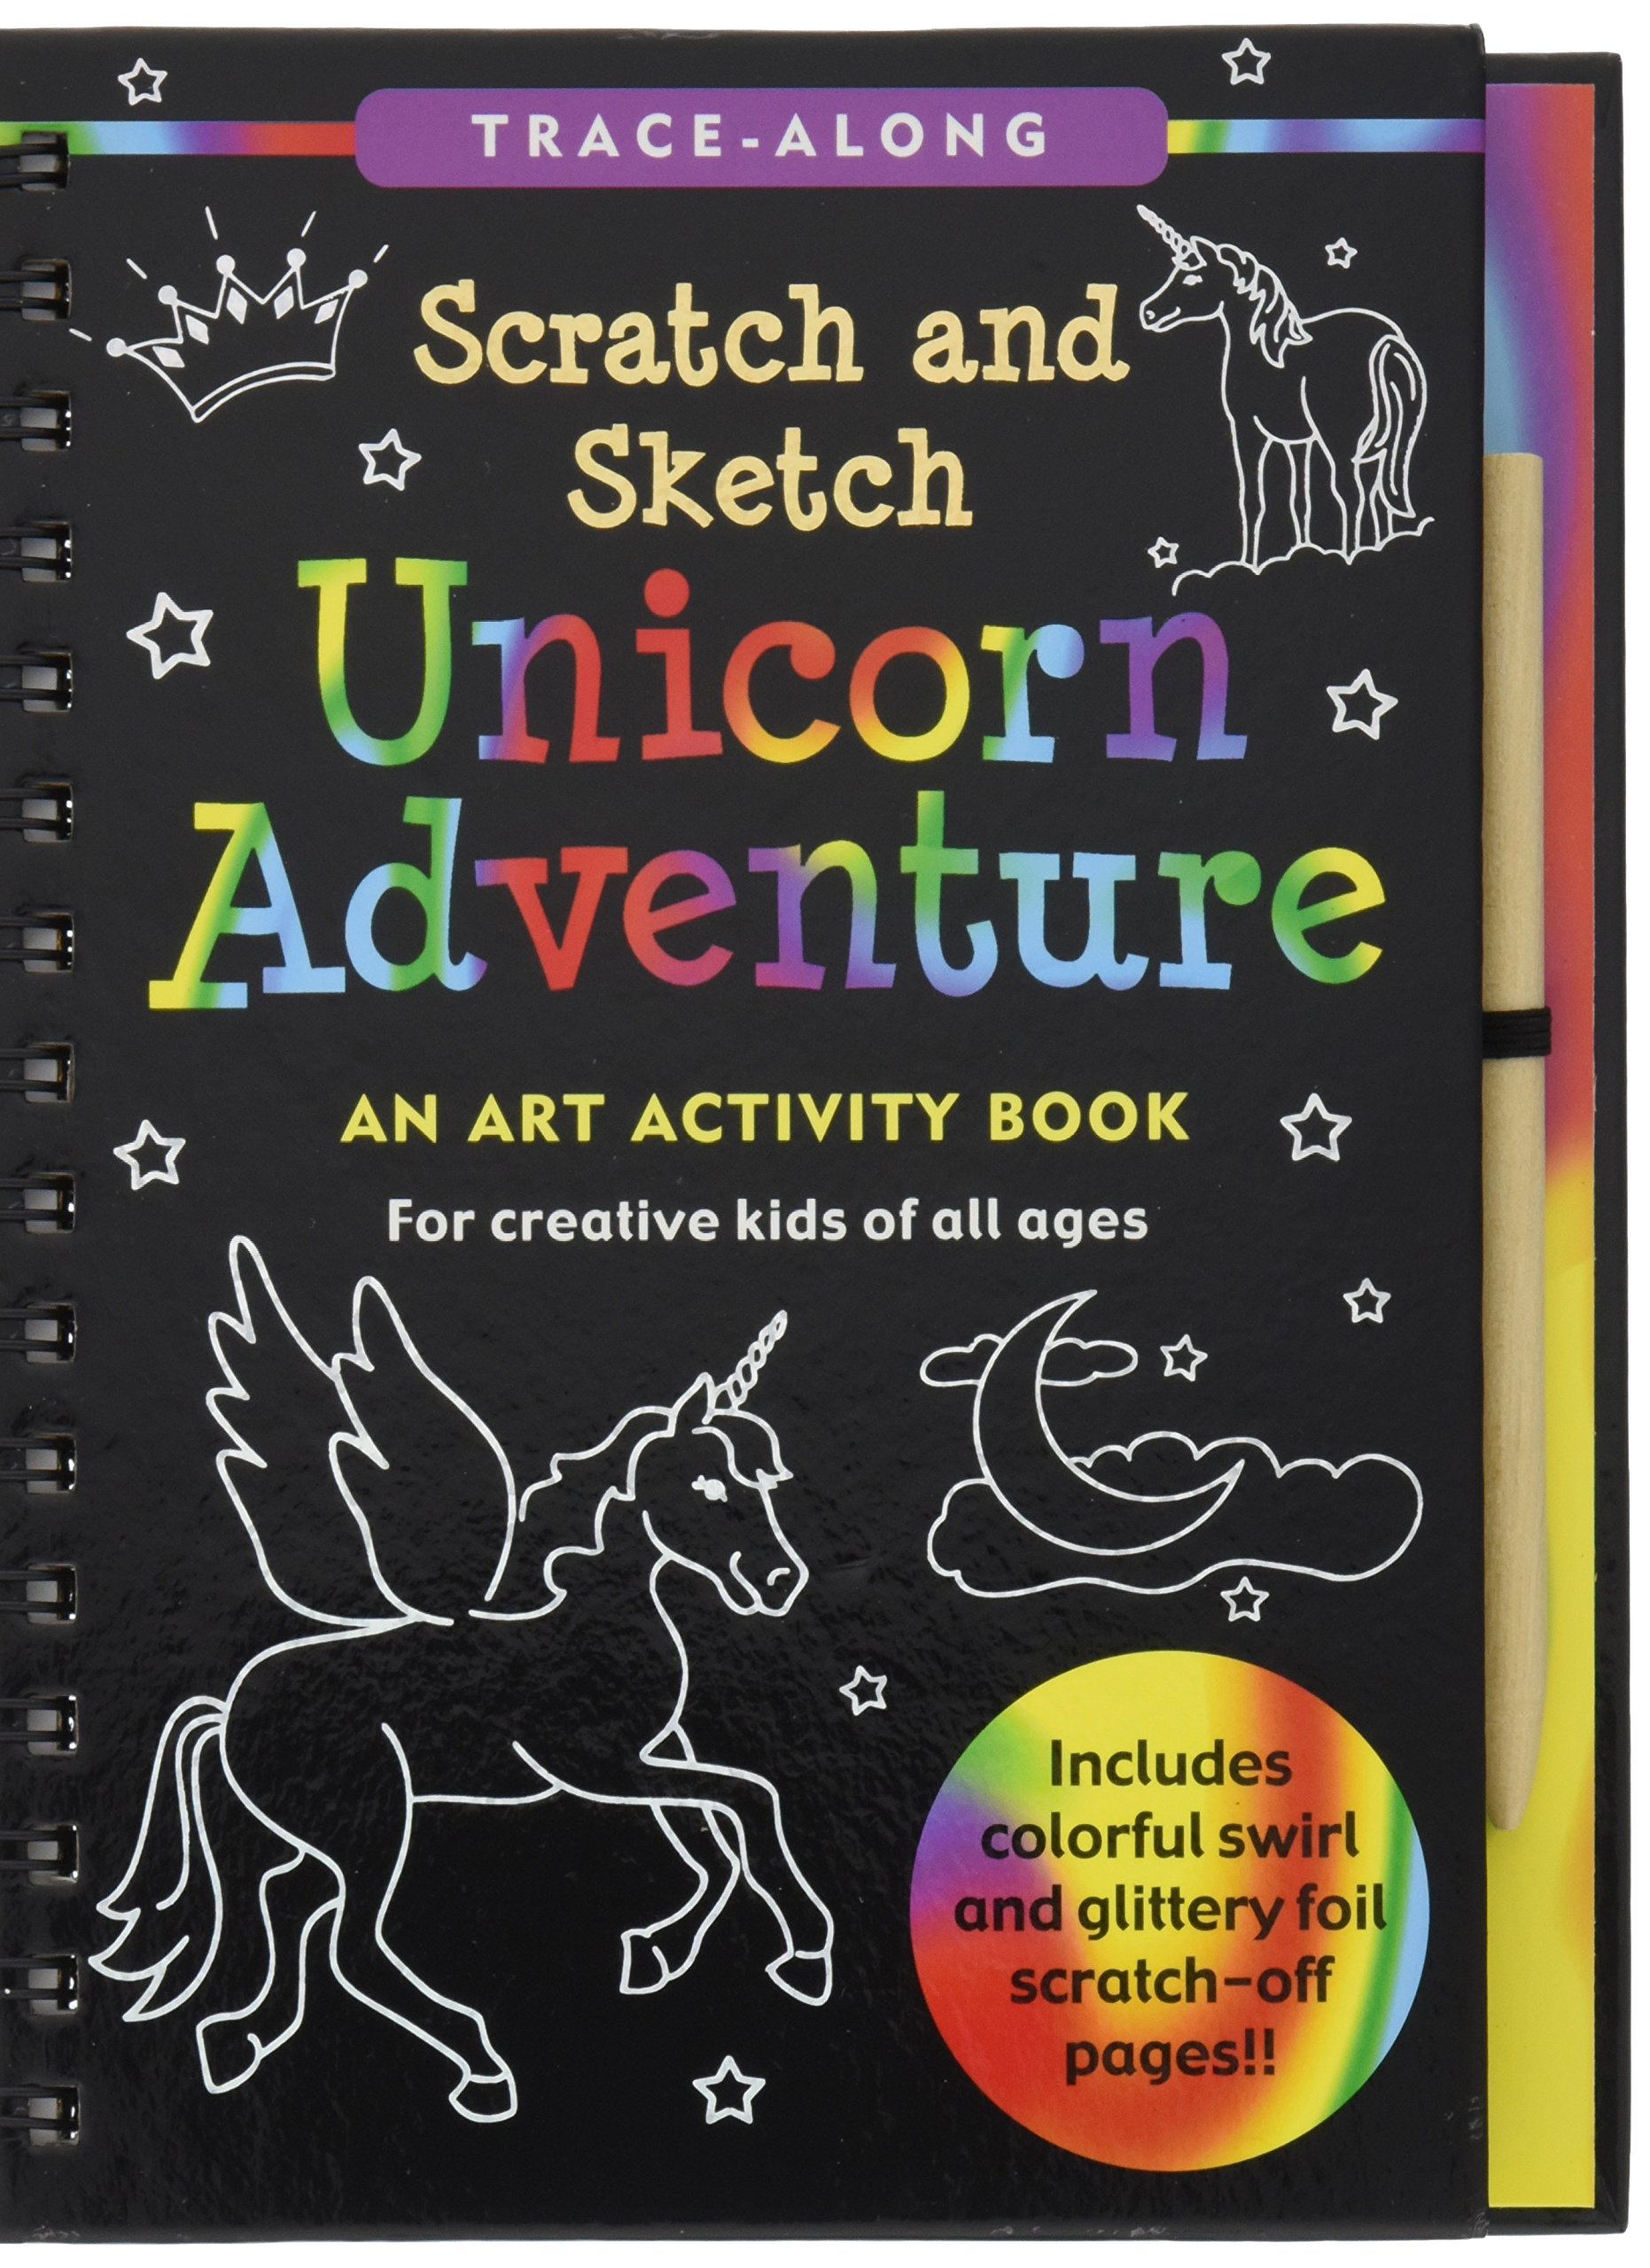 Unicorn Adventure Scratch and Sketch: An Art Activity Book for Creative Kids of All Ages 3